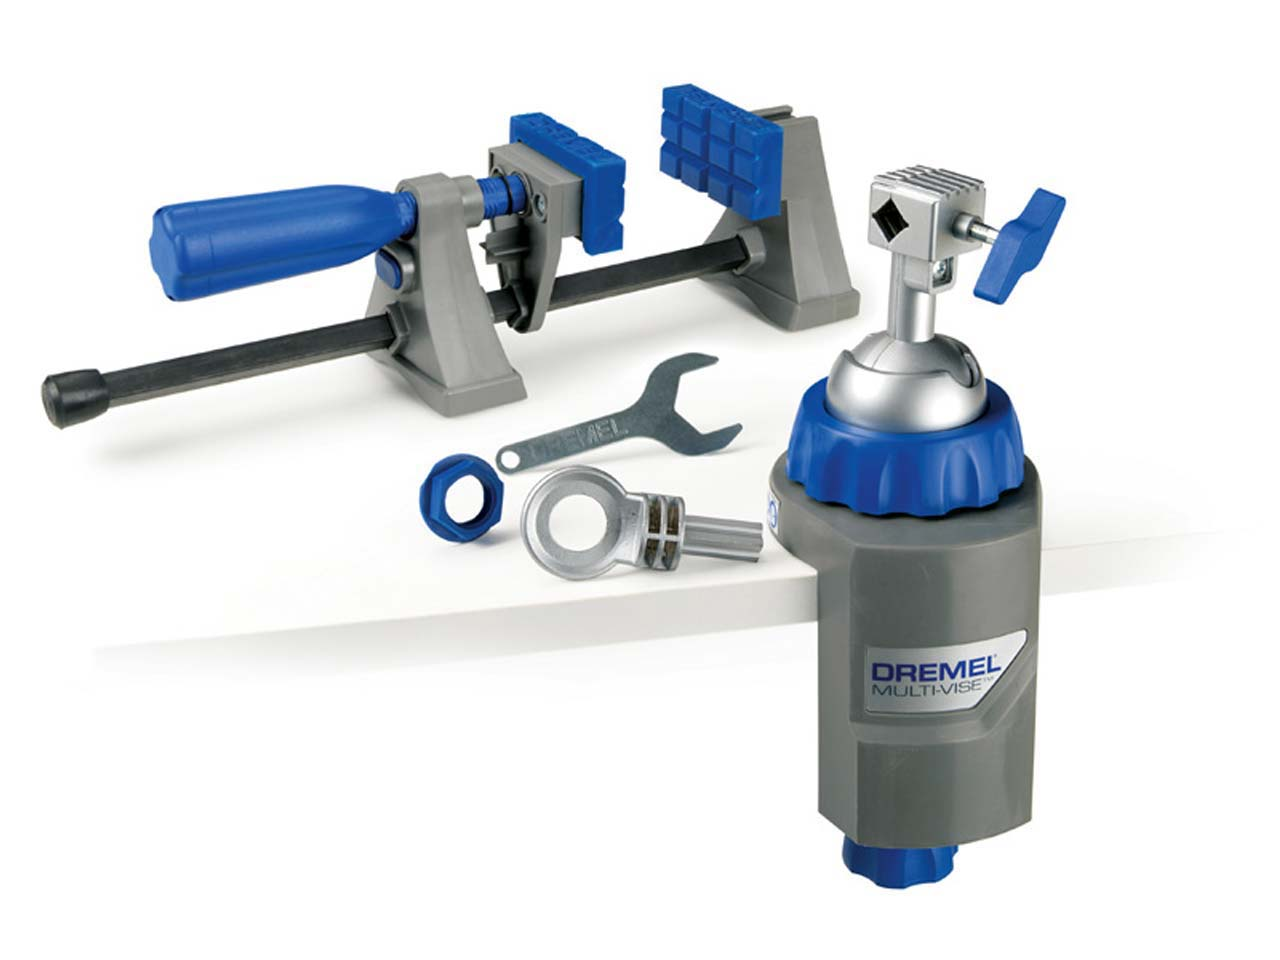 Dremel Multivise Vice, Clamp And   Tool Holder